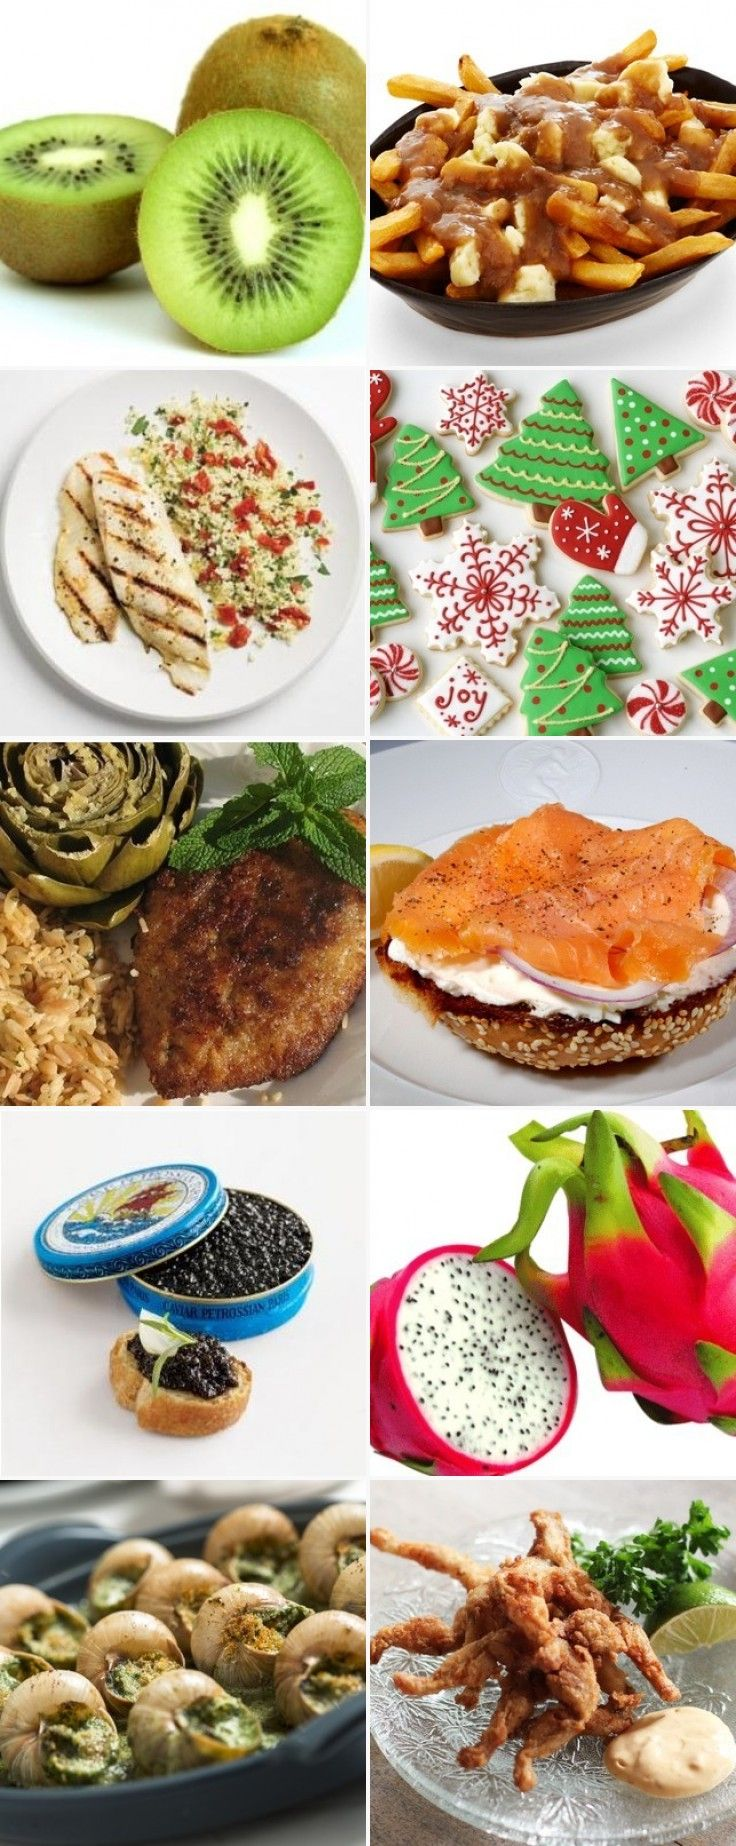 My Picks: The A to Z Food Challenge #Fave408851